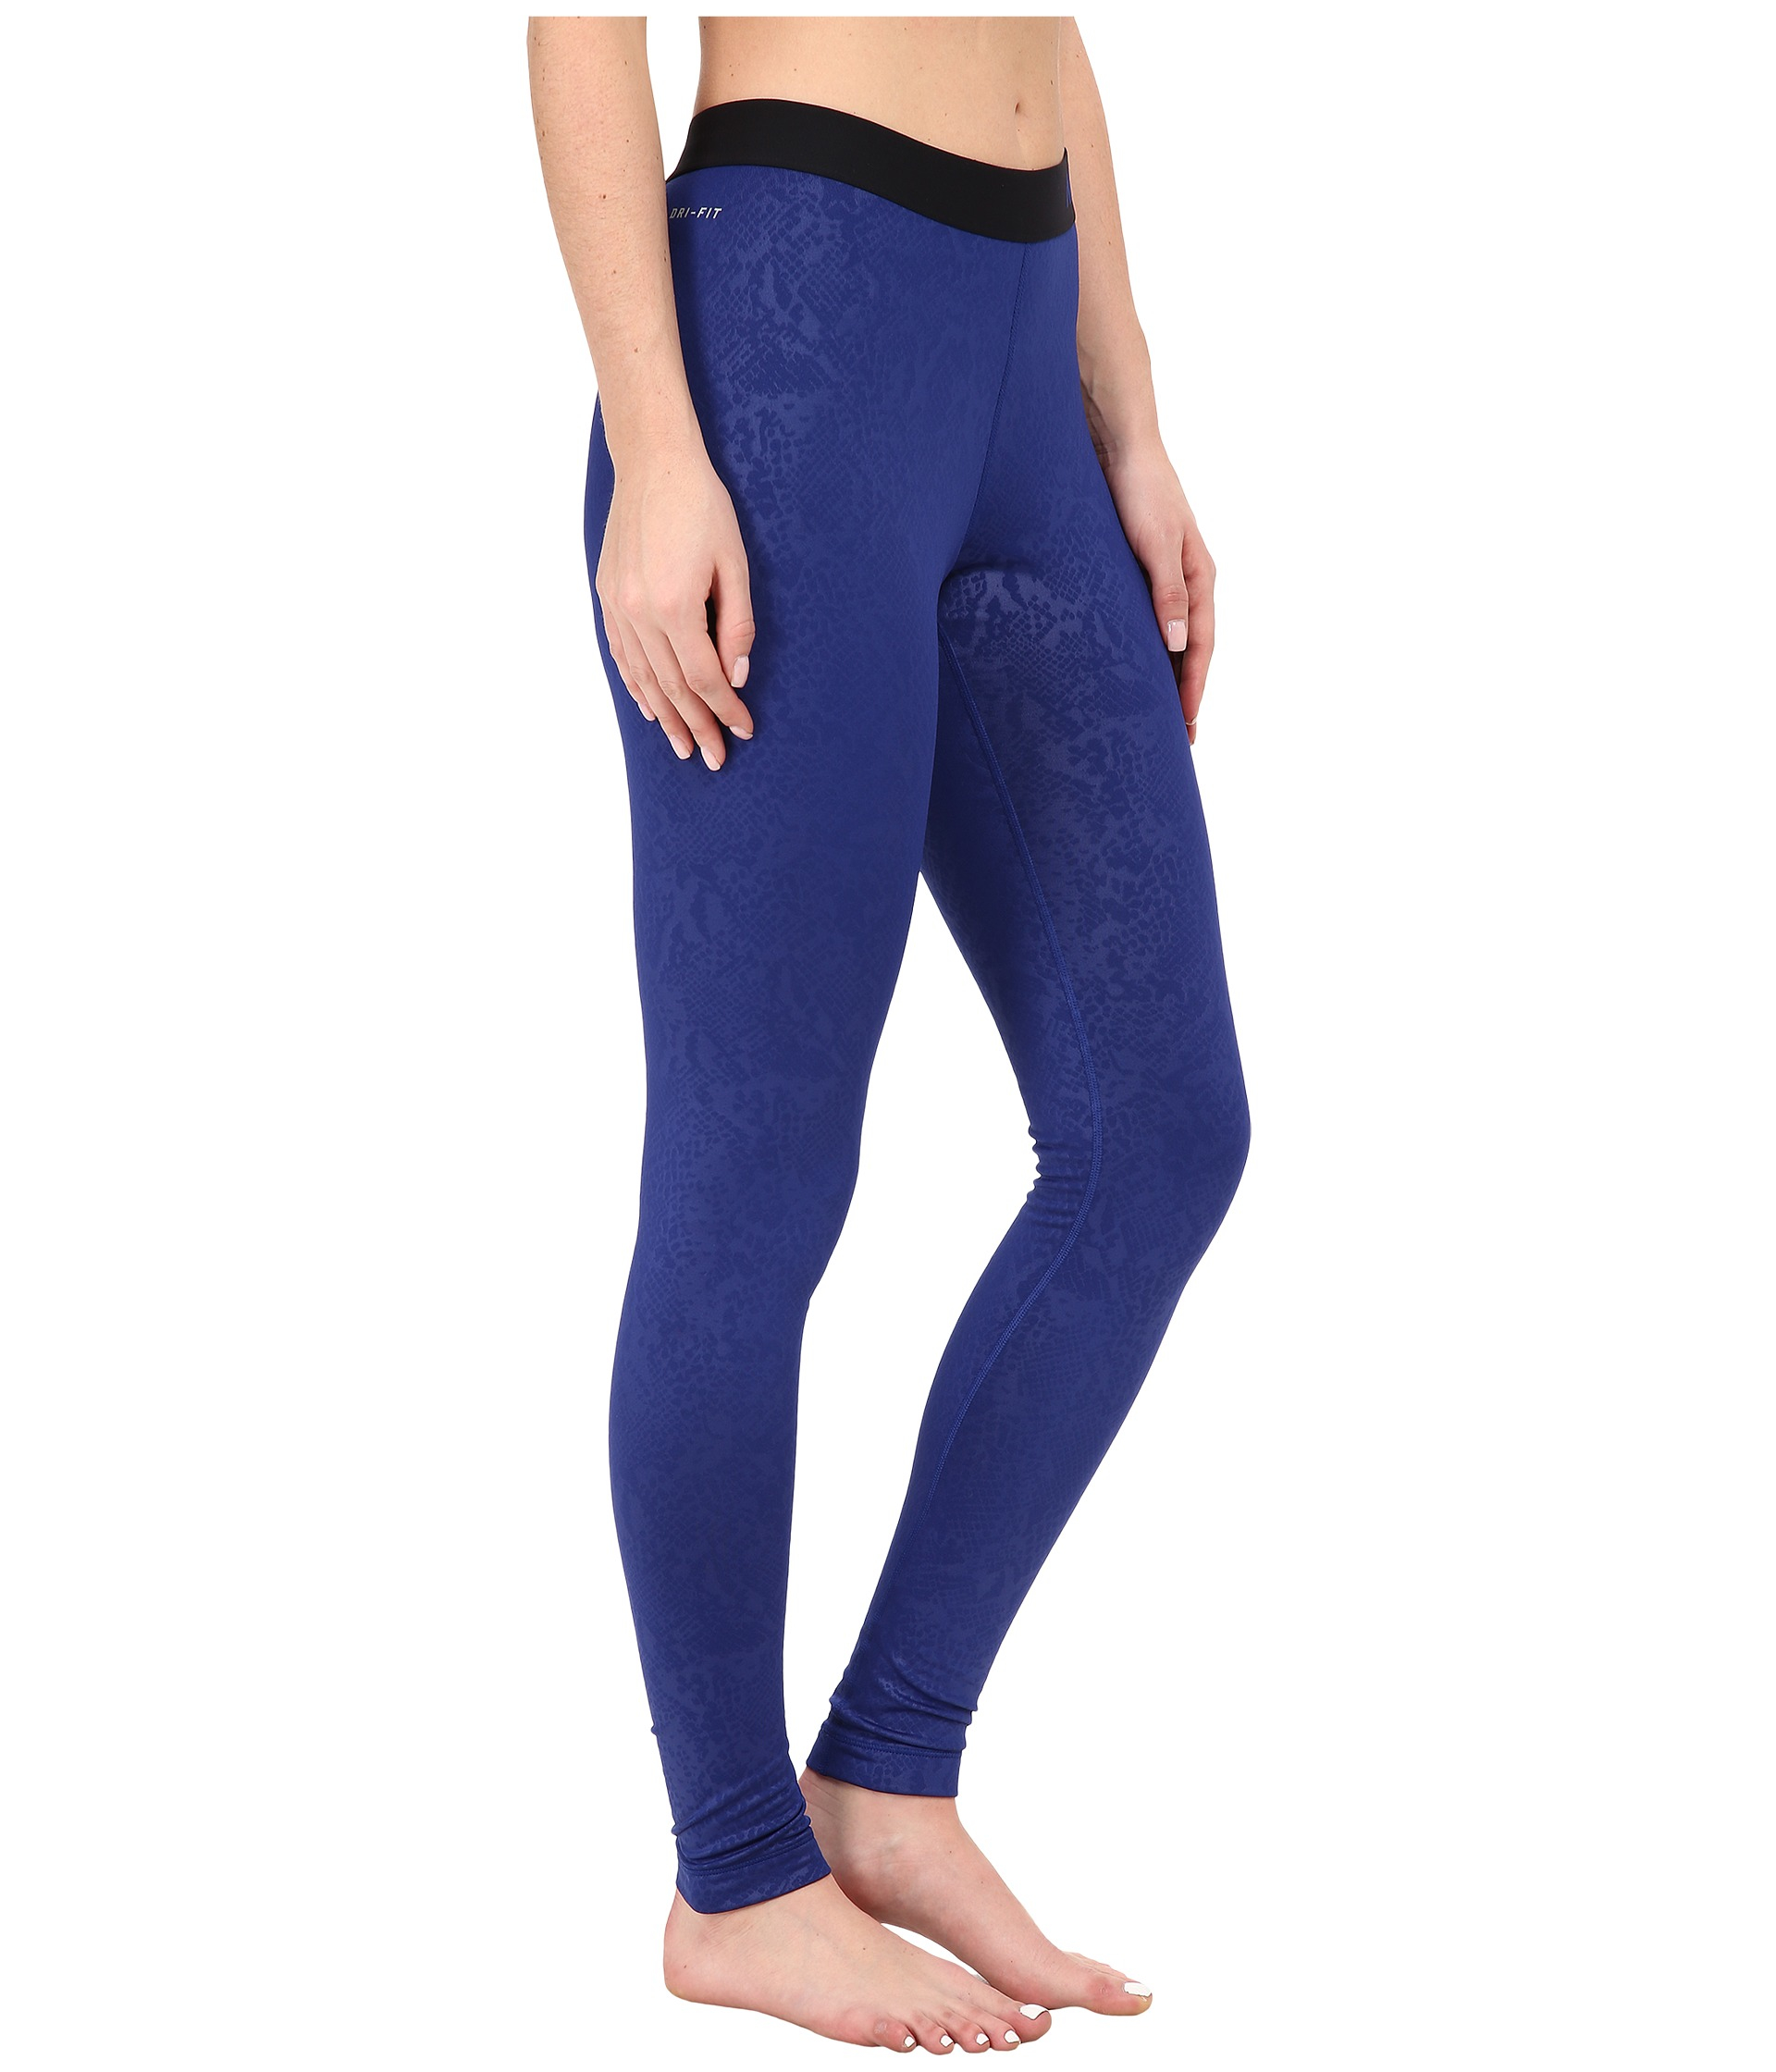 30db4f573ae178 Nike Pro Warm Embossed Vixen Tights in Blue - Lyst